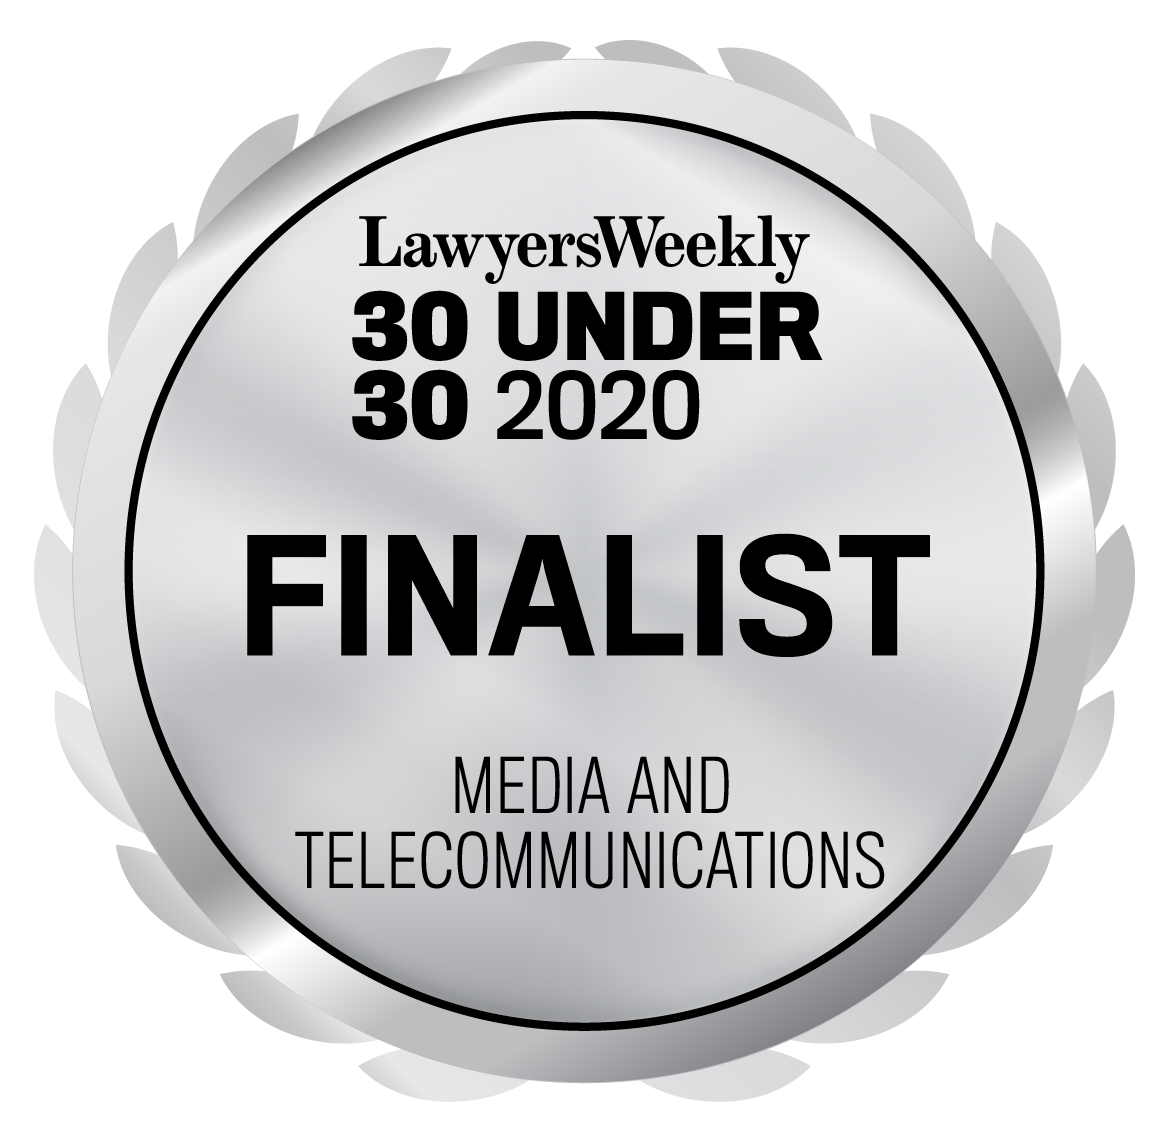 30 Under 30 Awards - Media and Telecommunications - Finalist - 2020 (1)